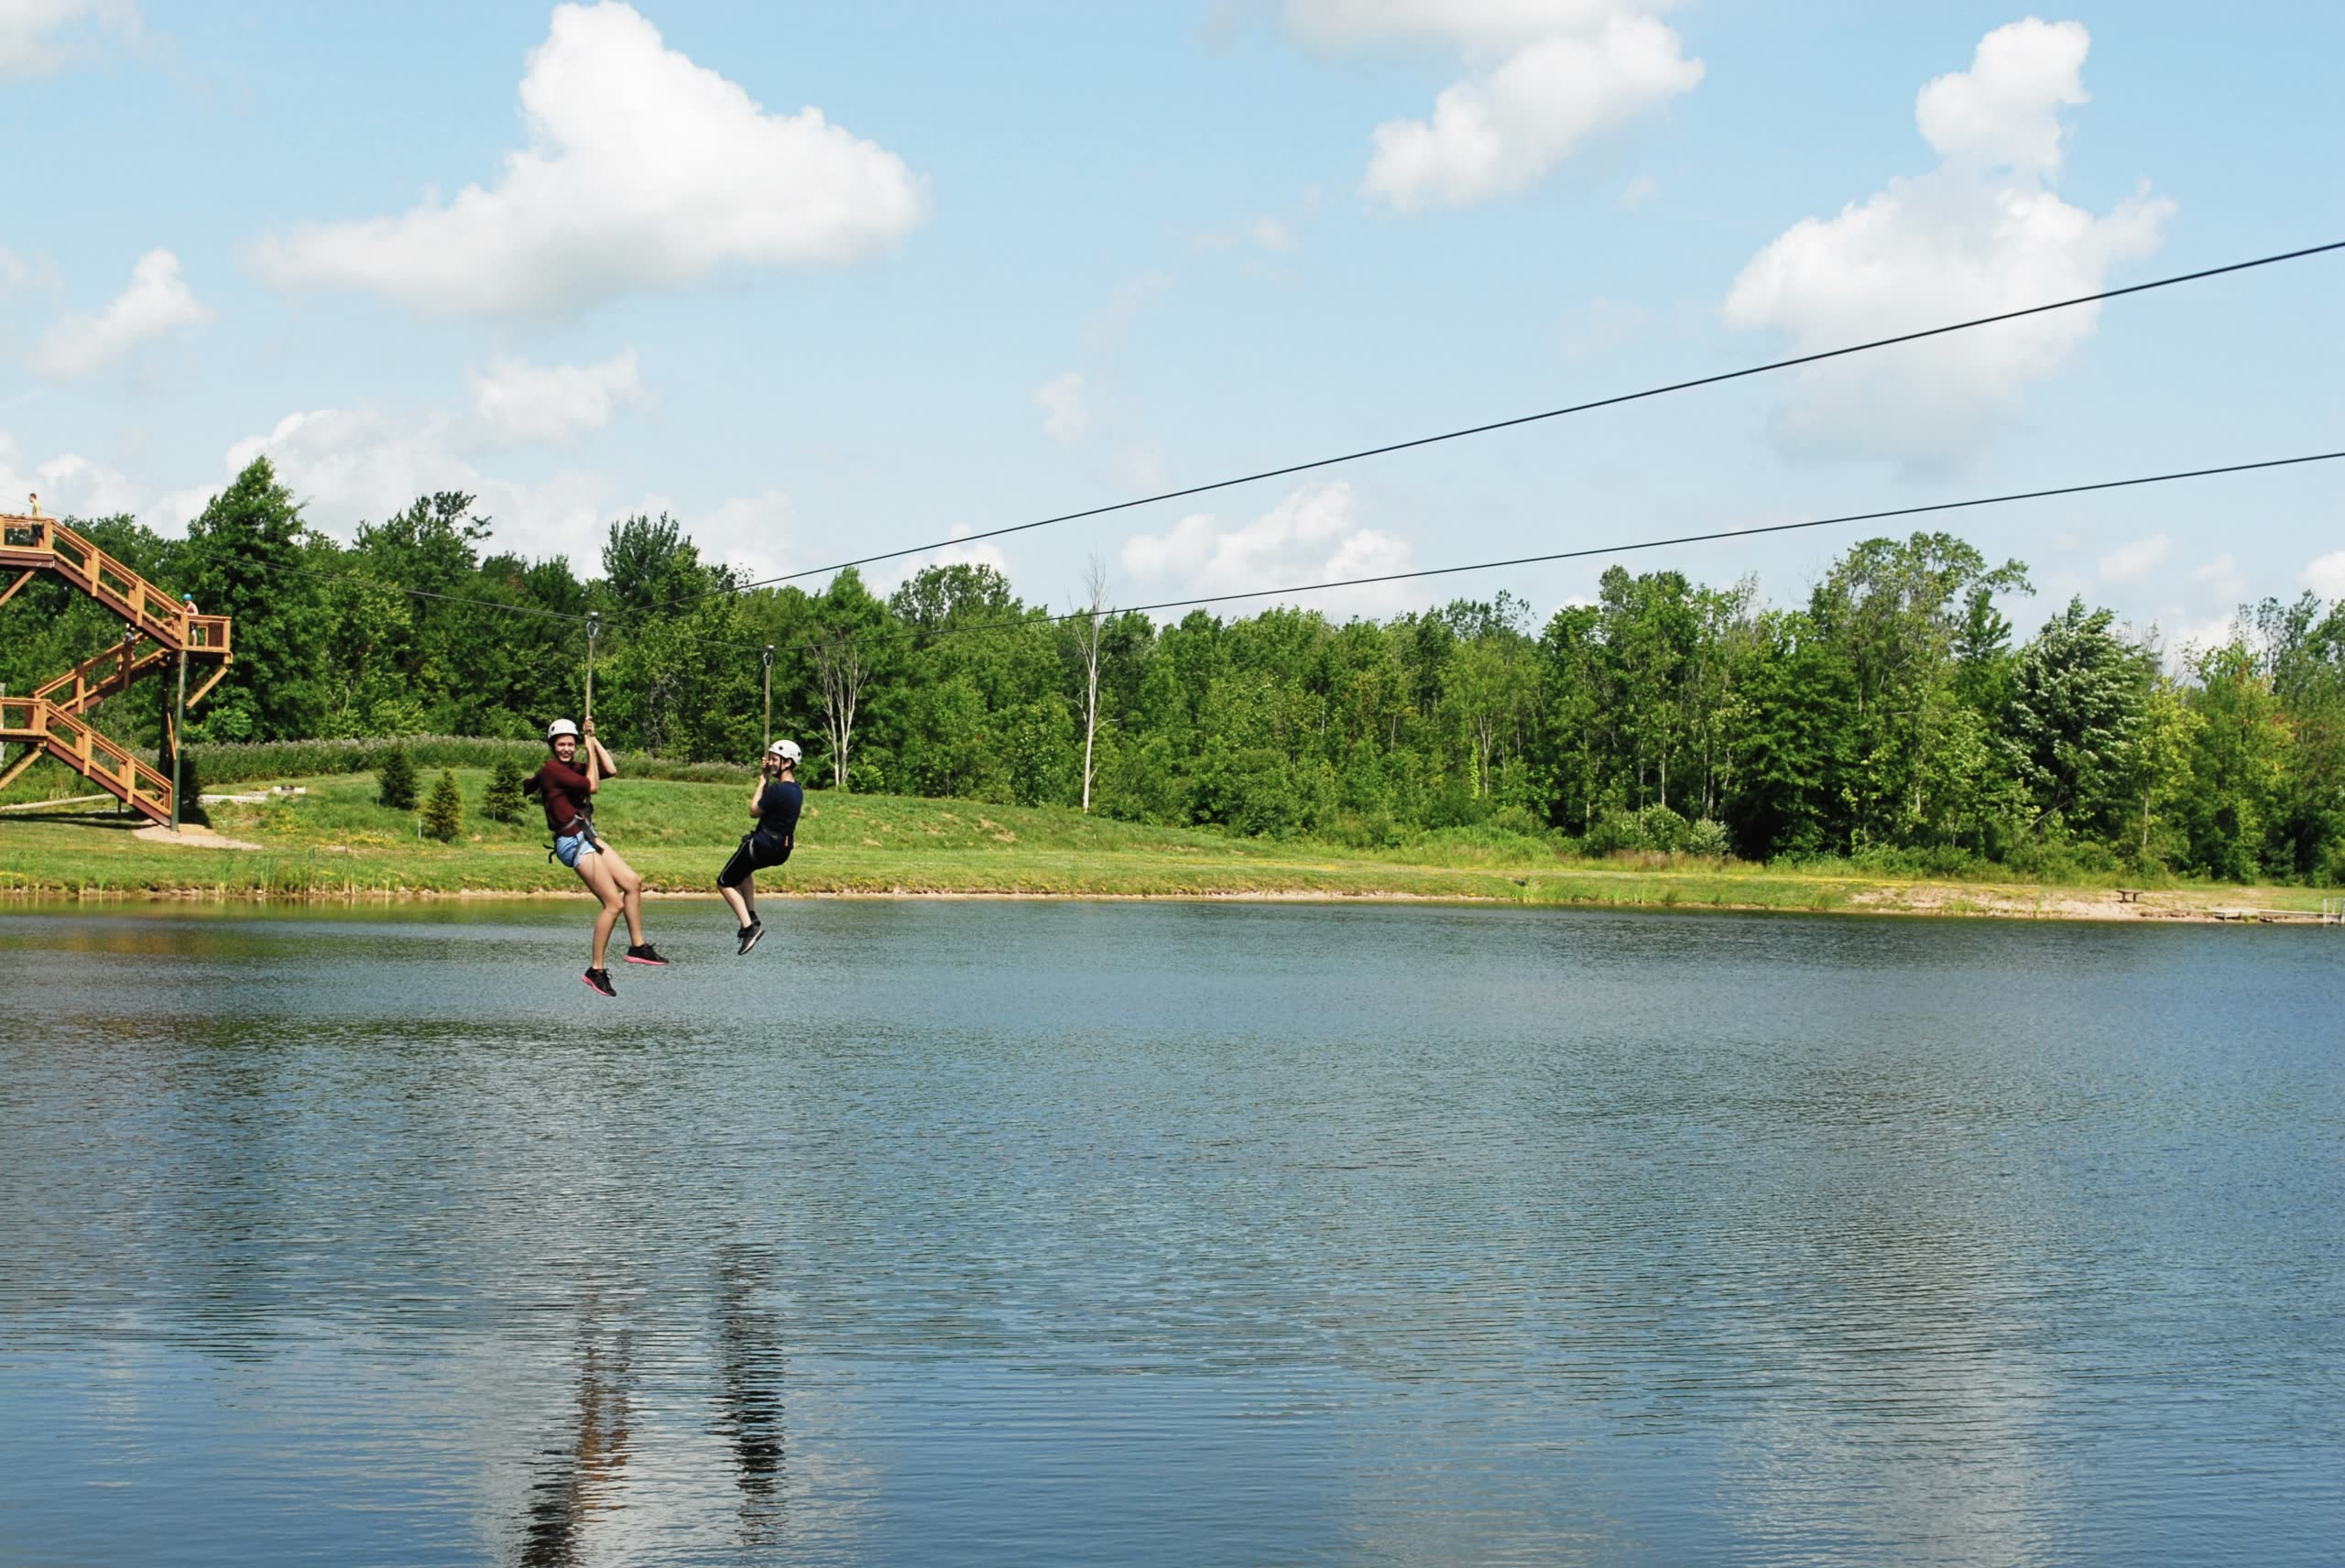 2 girls riding on zipline over the water